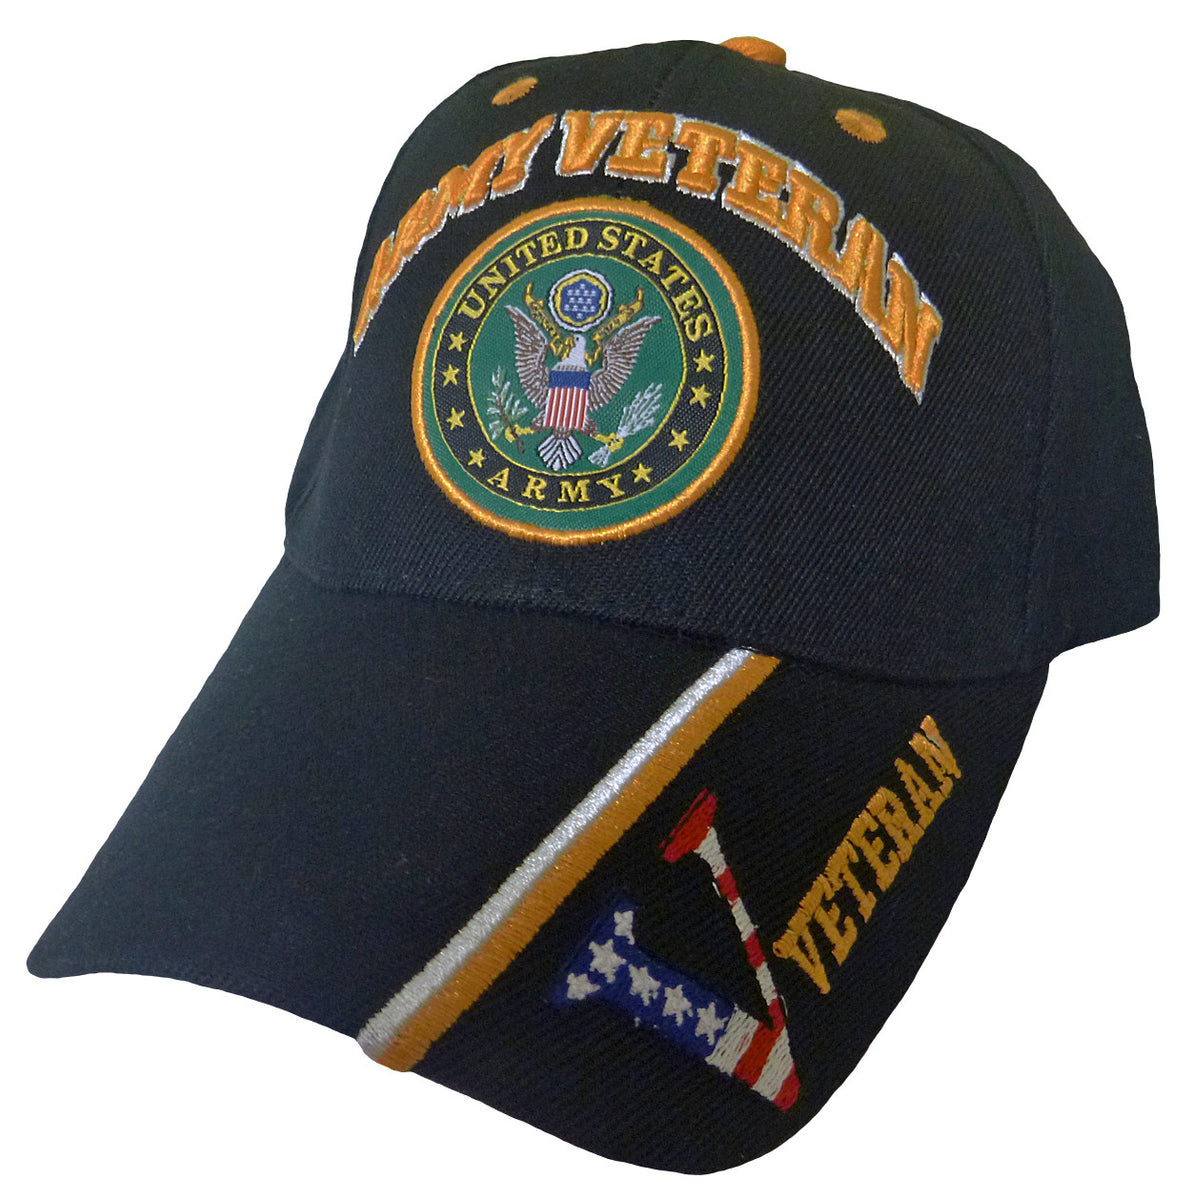 3e20f6141fbc0d U.S. Army Hat Black Logo Veteran V Baseball Cap Military Headwear – Buy Caps  and Hats